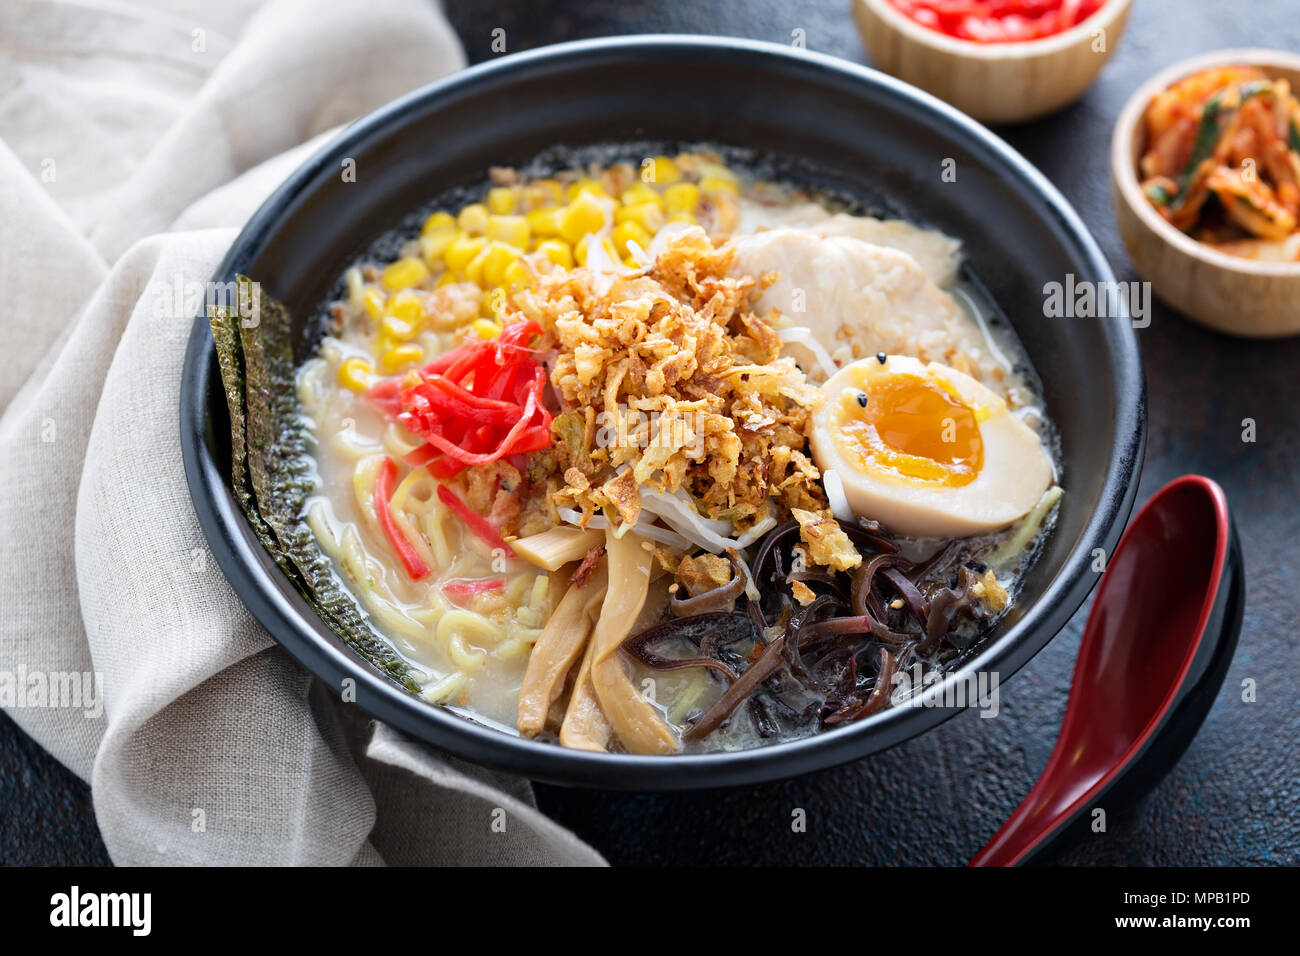 Spicy ramen bowl with noodles and chicken - Stock Image